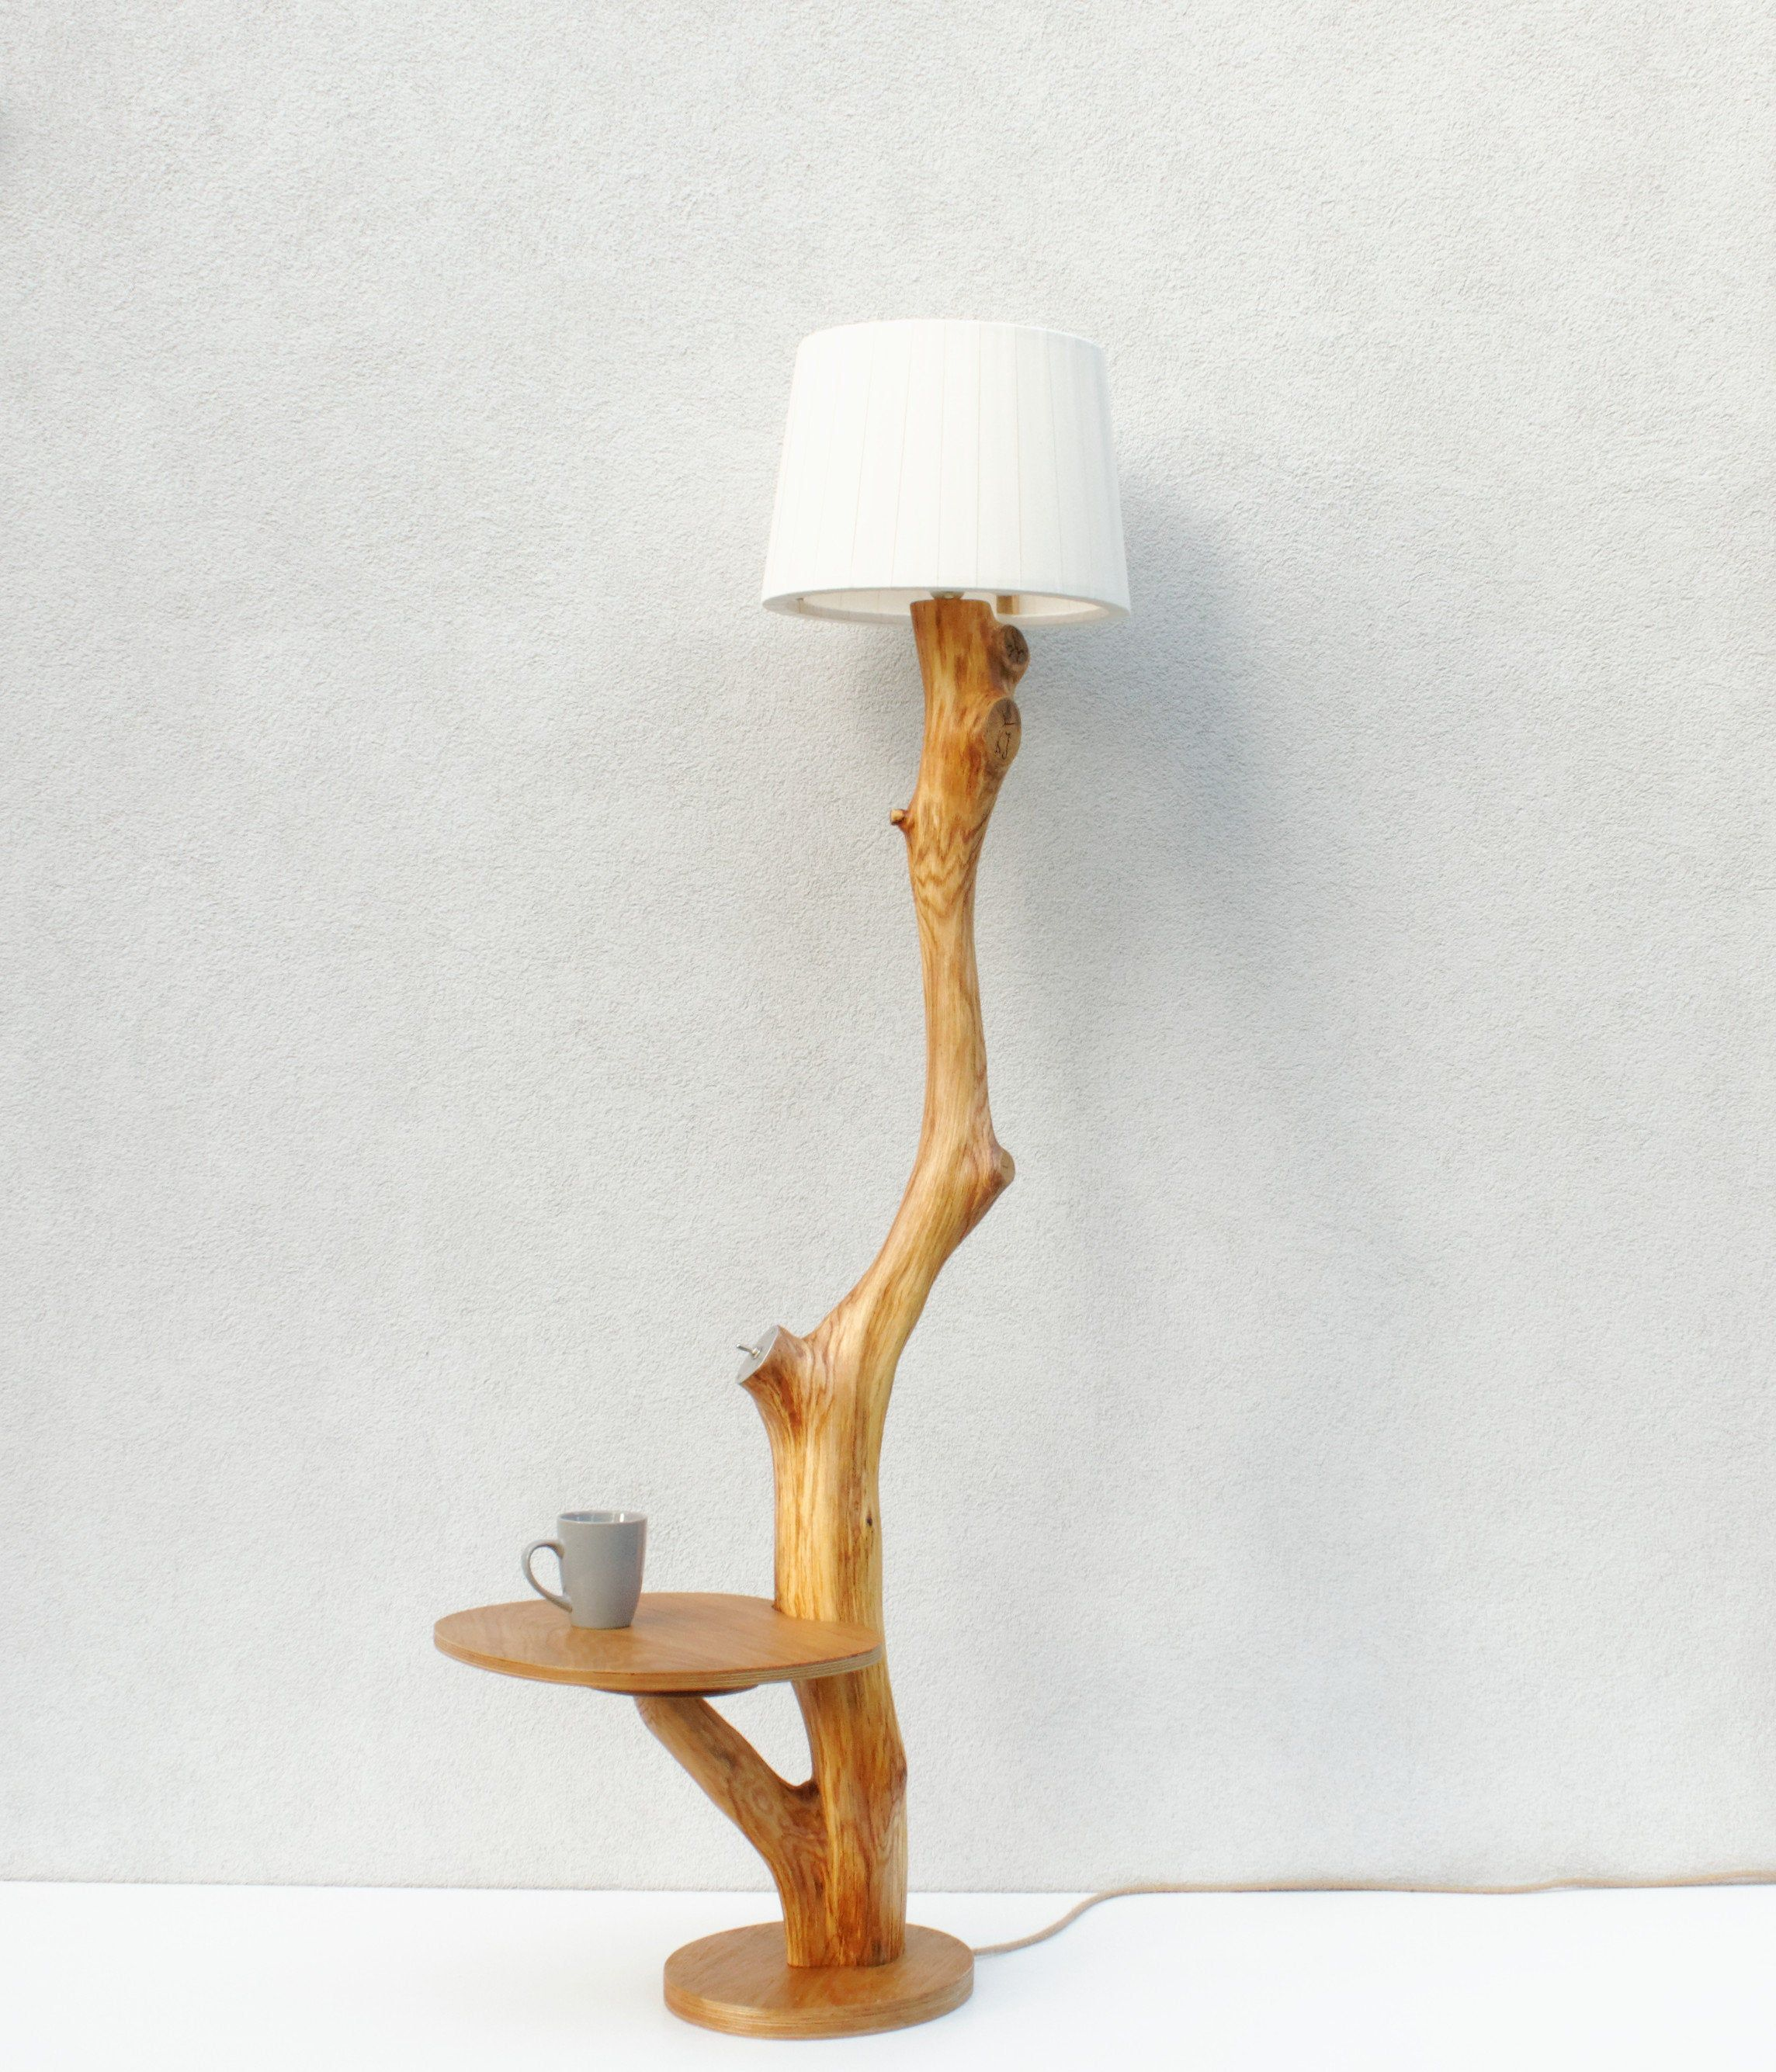 Floor Lamp Made Of Natural Oak Branch Eco Lamp Coffee Table Lighting Shelf Bedside Table Nature Design Hand Made Wooden Lamp Lamp Coffee Table